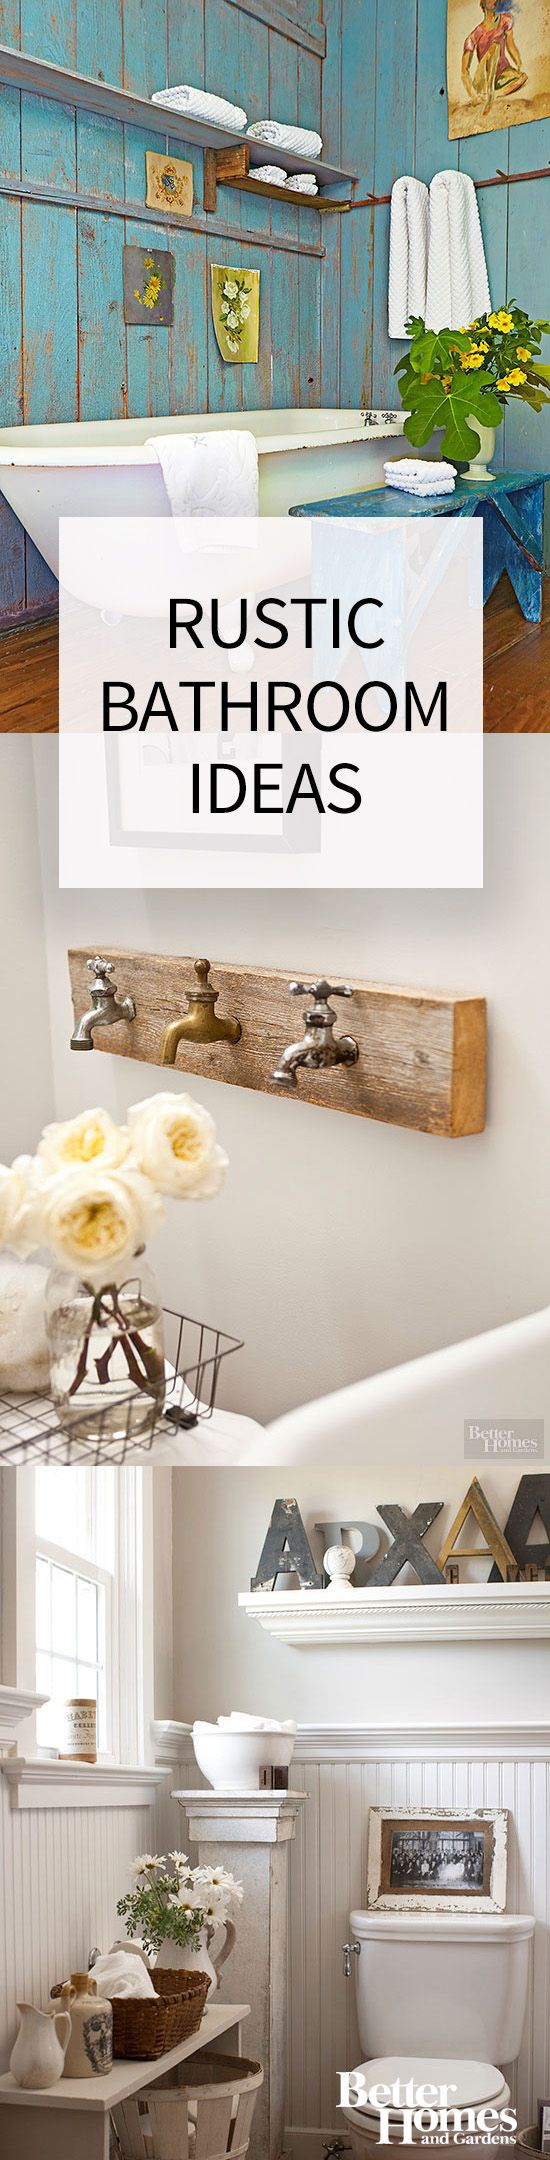 Unpolished wood with a weathered look, old-fashioned and vintage décor, and a classic tub with romantic antique accents are a few ways to create a beautiful rustic bathroom. Also, try repurposing historic items found in flea markets or antique stores. Don't forget about color and texture when designing your rustic restroom!